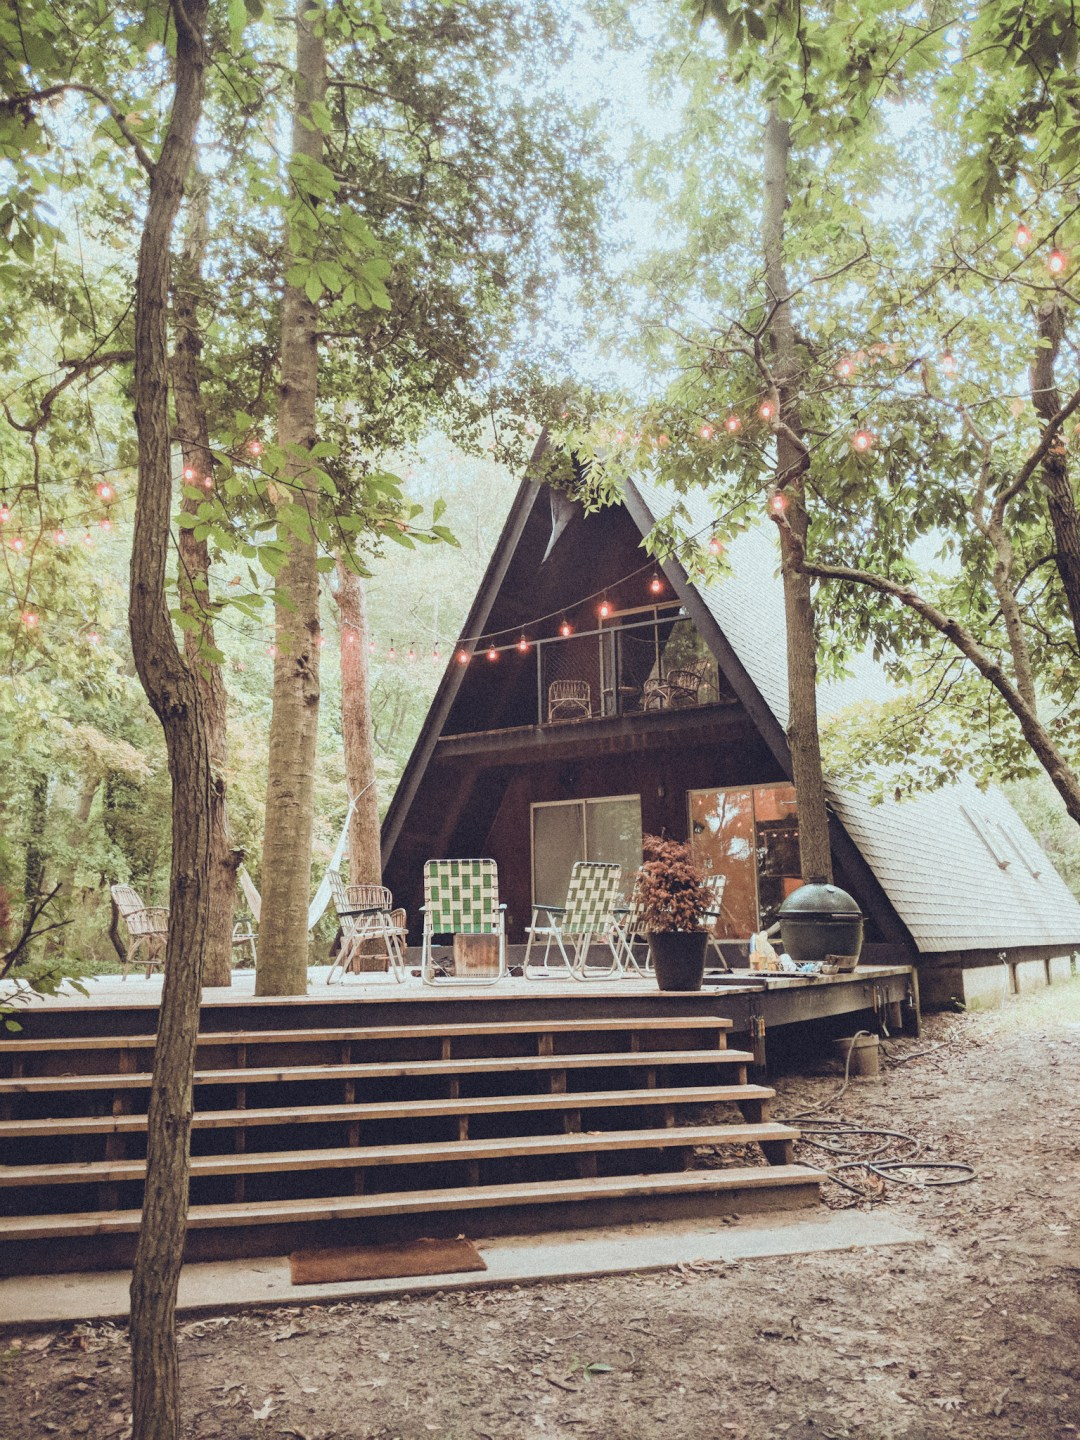 The Lokal Hotel A-Frame: A Cabin the Woods